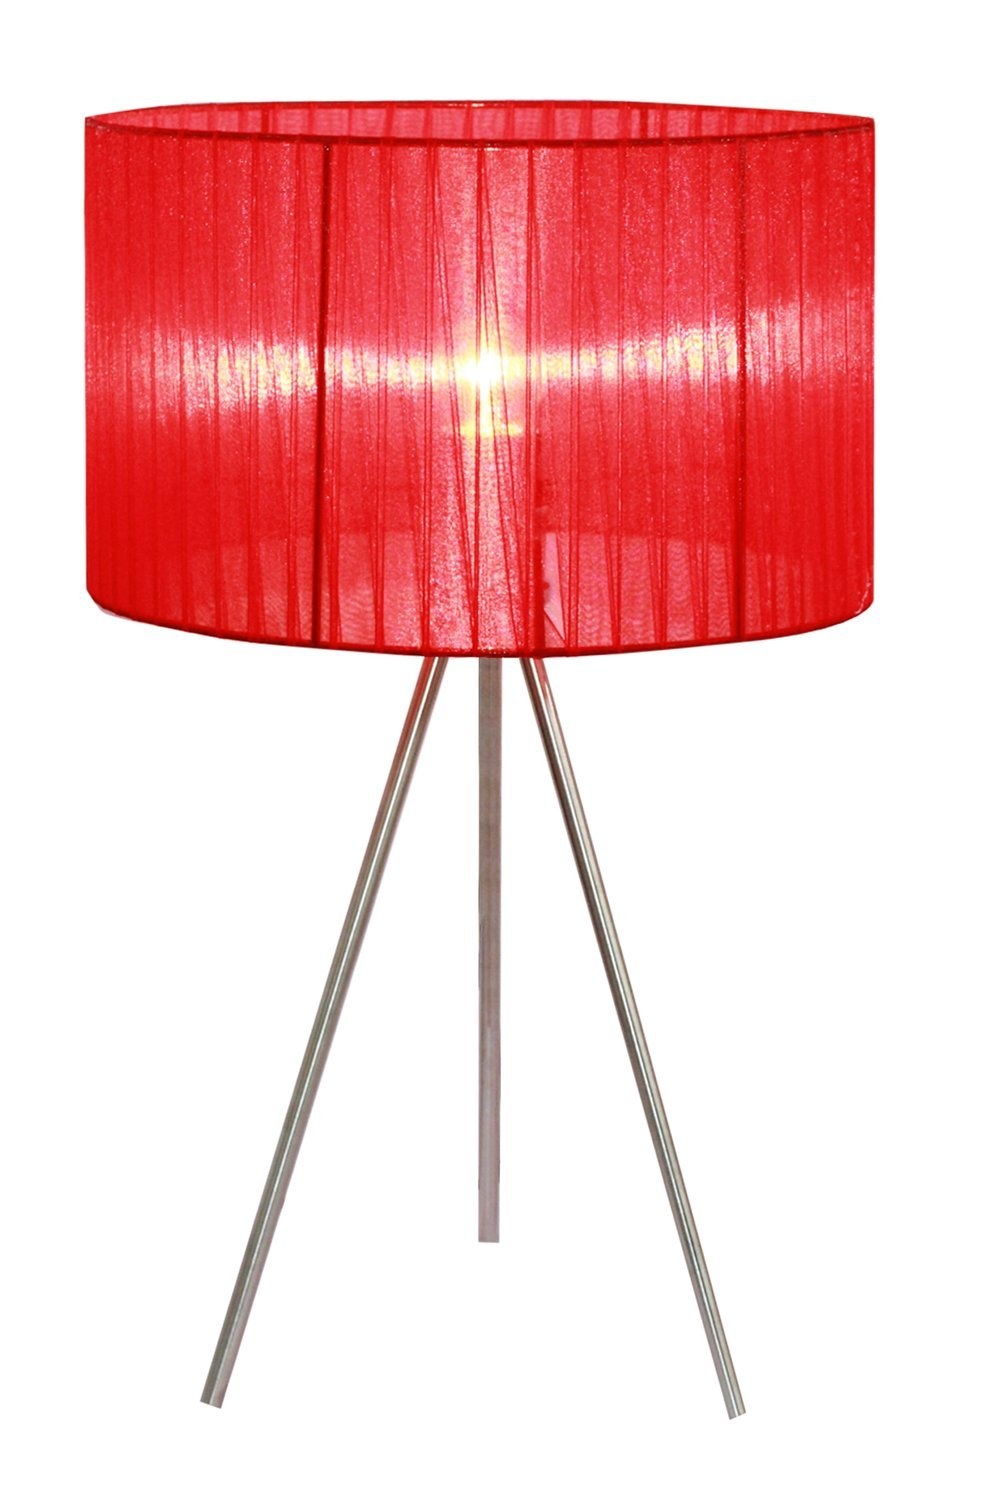 Simple Designs Home LT2006-RED Brushed Nickel Tripod Table Lamp with Pleated Silk Sheer Shade, 11.81'' x 11.81'' x 19.69'', Red